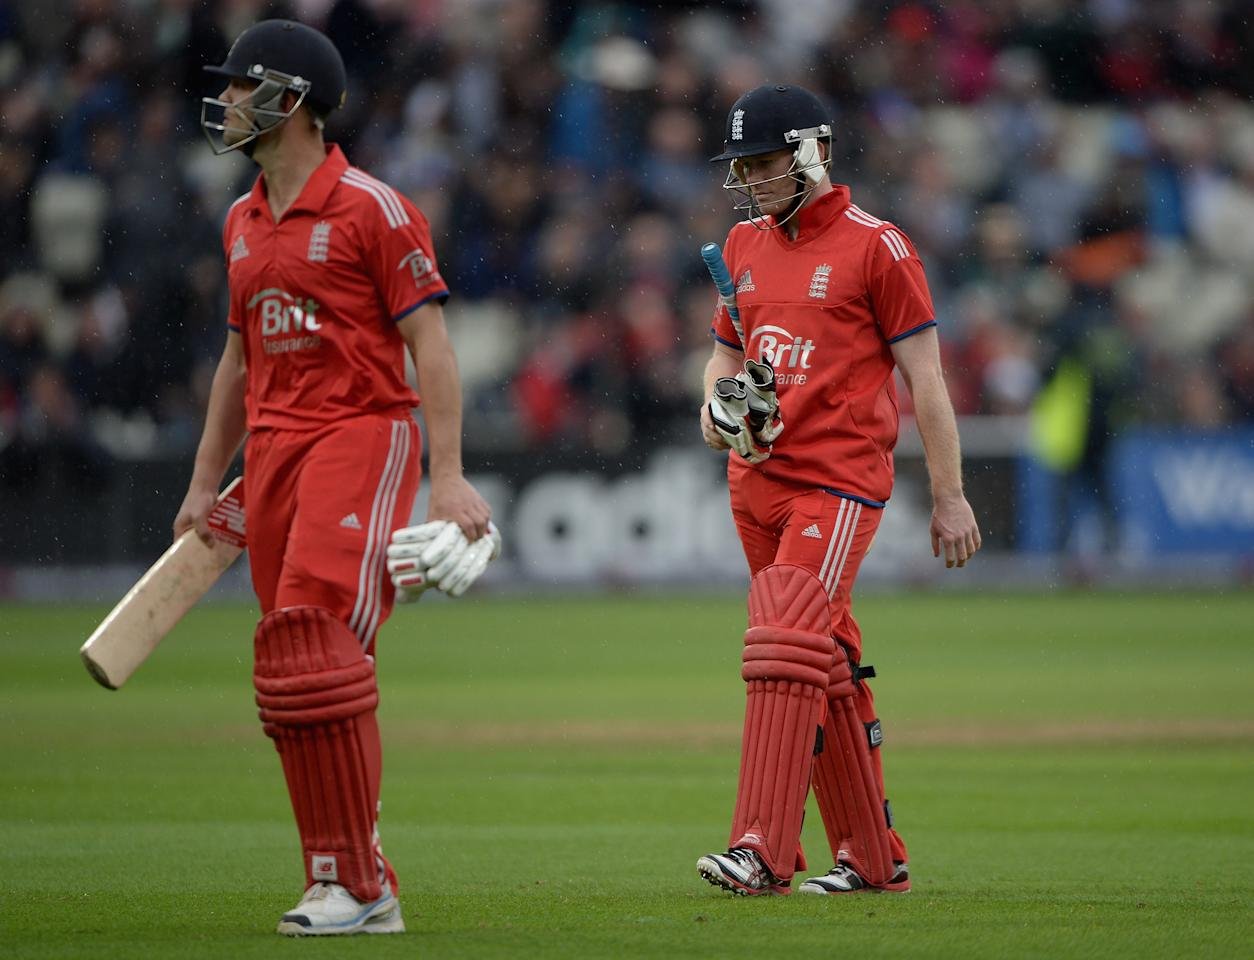 BIRMINGHAM, ENGLAND - SEPTEMBER 11:  England captain Eoin Morgan and Jonathan Trott leaves the field as rain stops play during the 3rd NatWest Series ODI match between England and Australia at Edgbaston on September 11, 2013 in Birmingham, England.  (Photo by Gareth Copley/Getty Images)